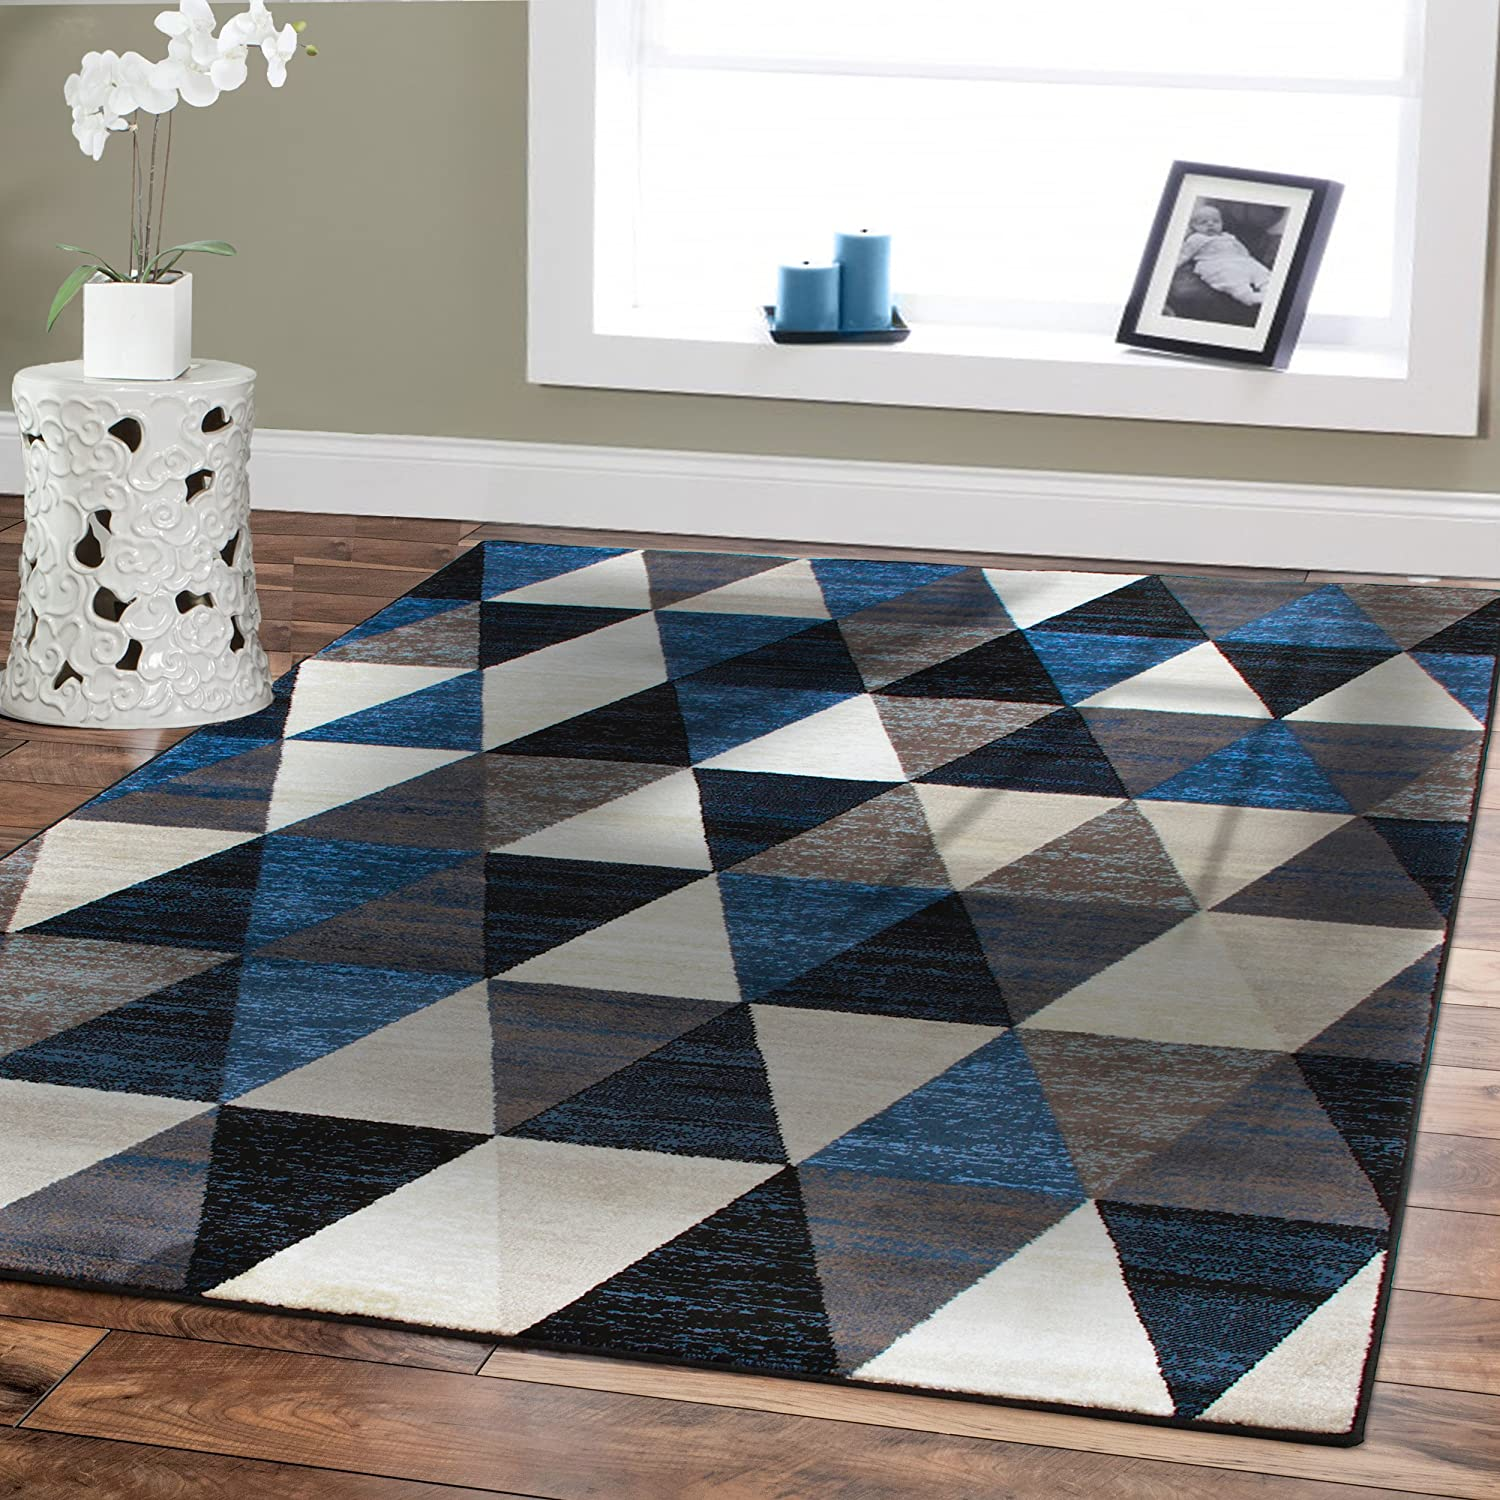 ... Triangle Style 2x3 Foyer Rugs Indoor Rugs Clearance Rugs Beige Cream  White Blue Navy Black Ourdoor Rugs Kitchen Rugs 2x4 Diamond Pattern Rug:  Kitchen ...